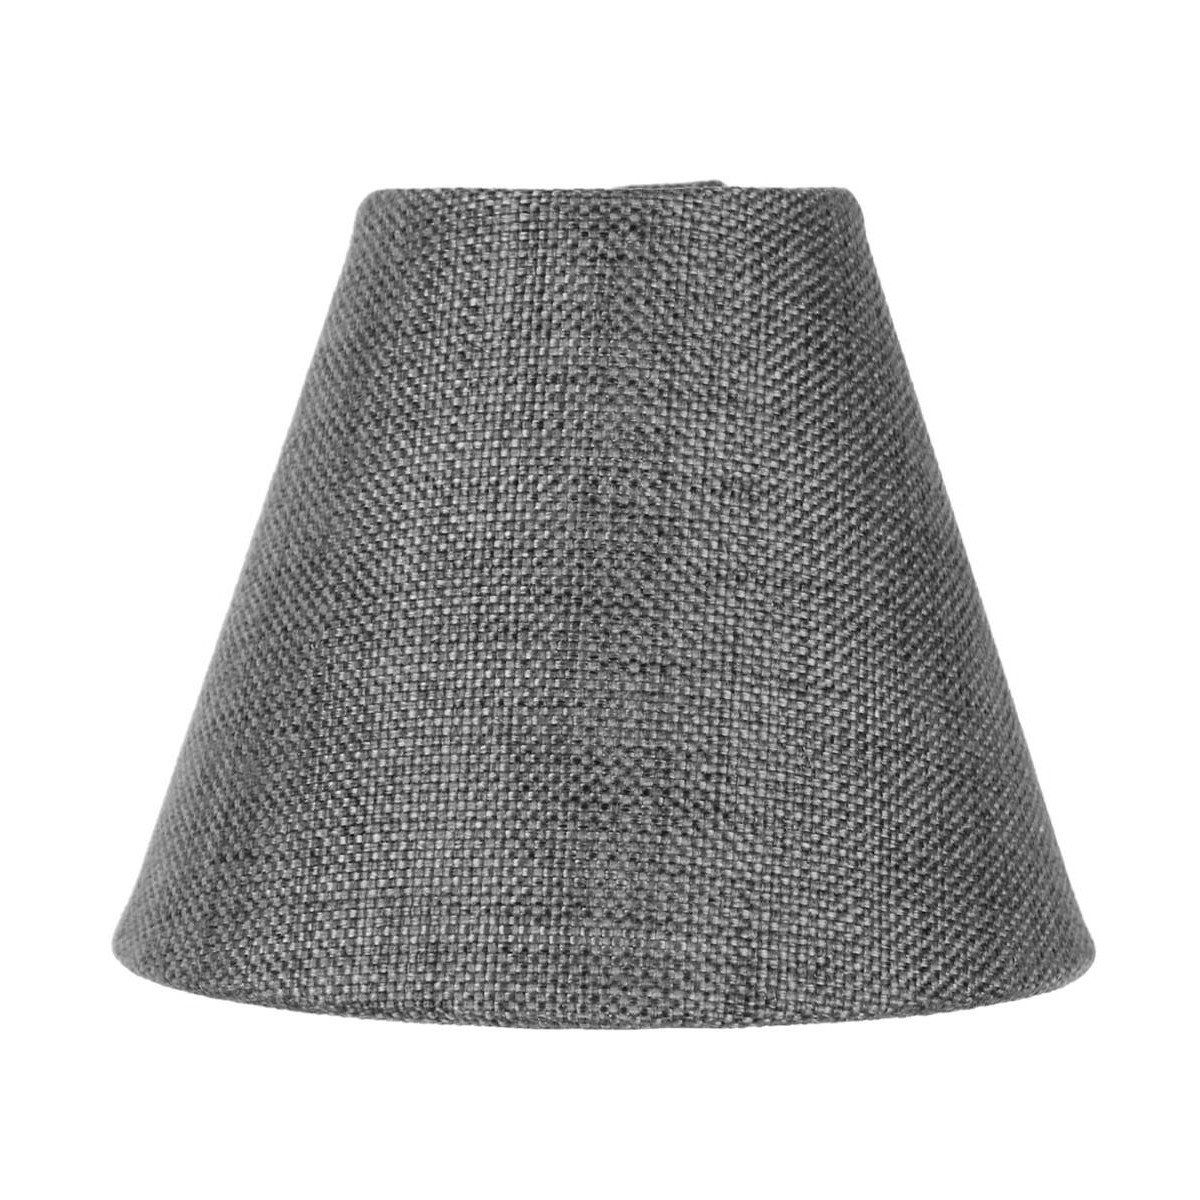 3x6x5 Granite Grey Burlap Chandelier Lampshade By Home Concept - Perfect for chandeliers, foyer lights, and wall sconces -Small, Grey